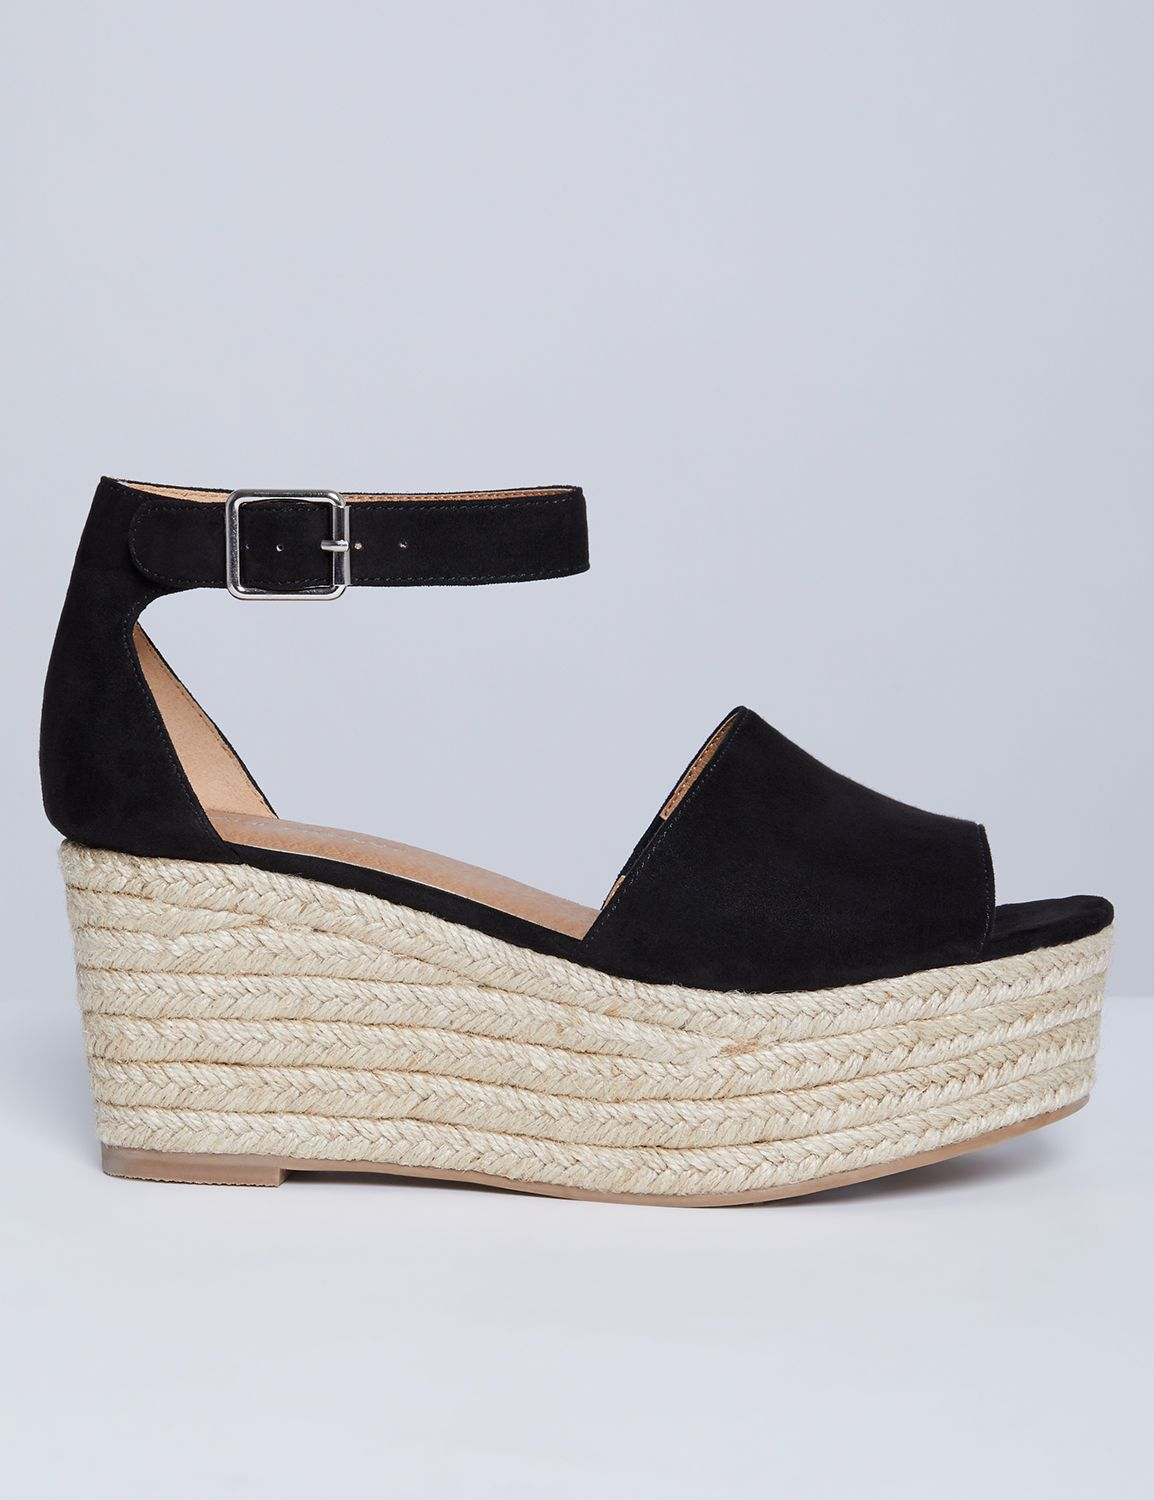 Lane Bryant Womens Espadrille Wedge 8W Pitch Black